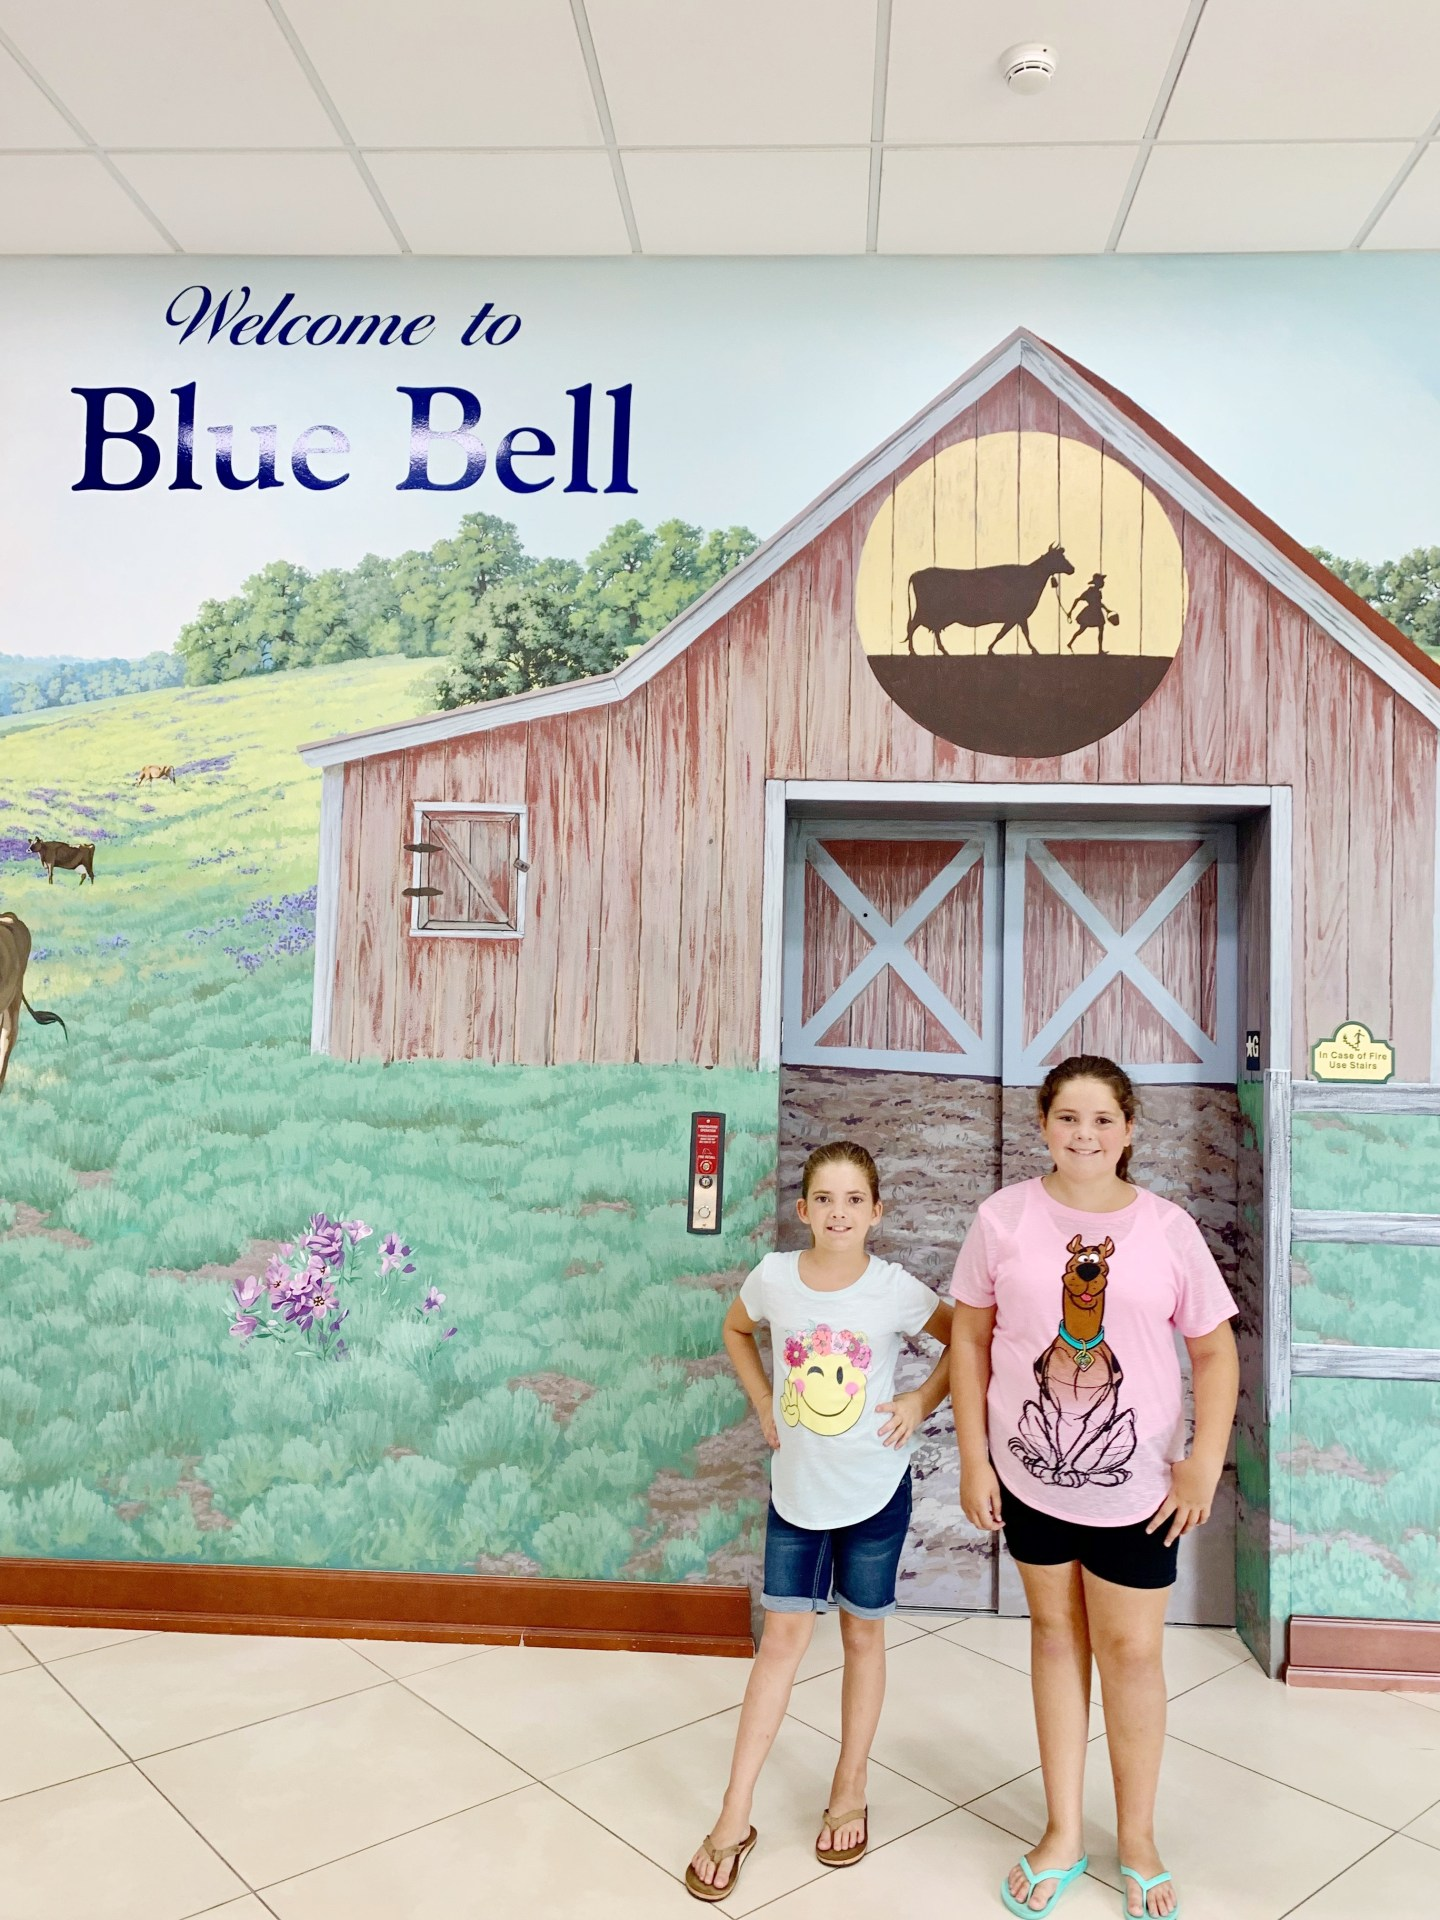 Before heading up to the Blue Bell observation deck.